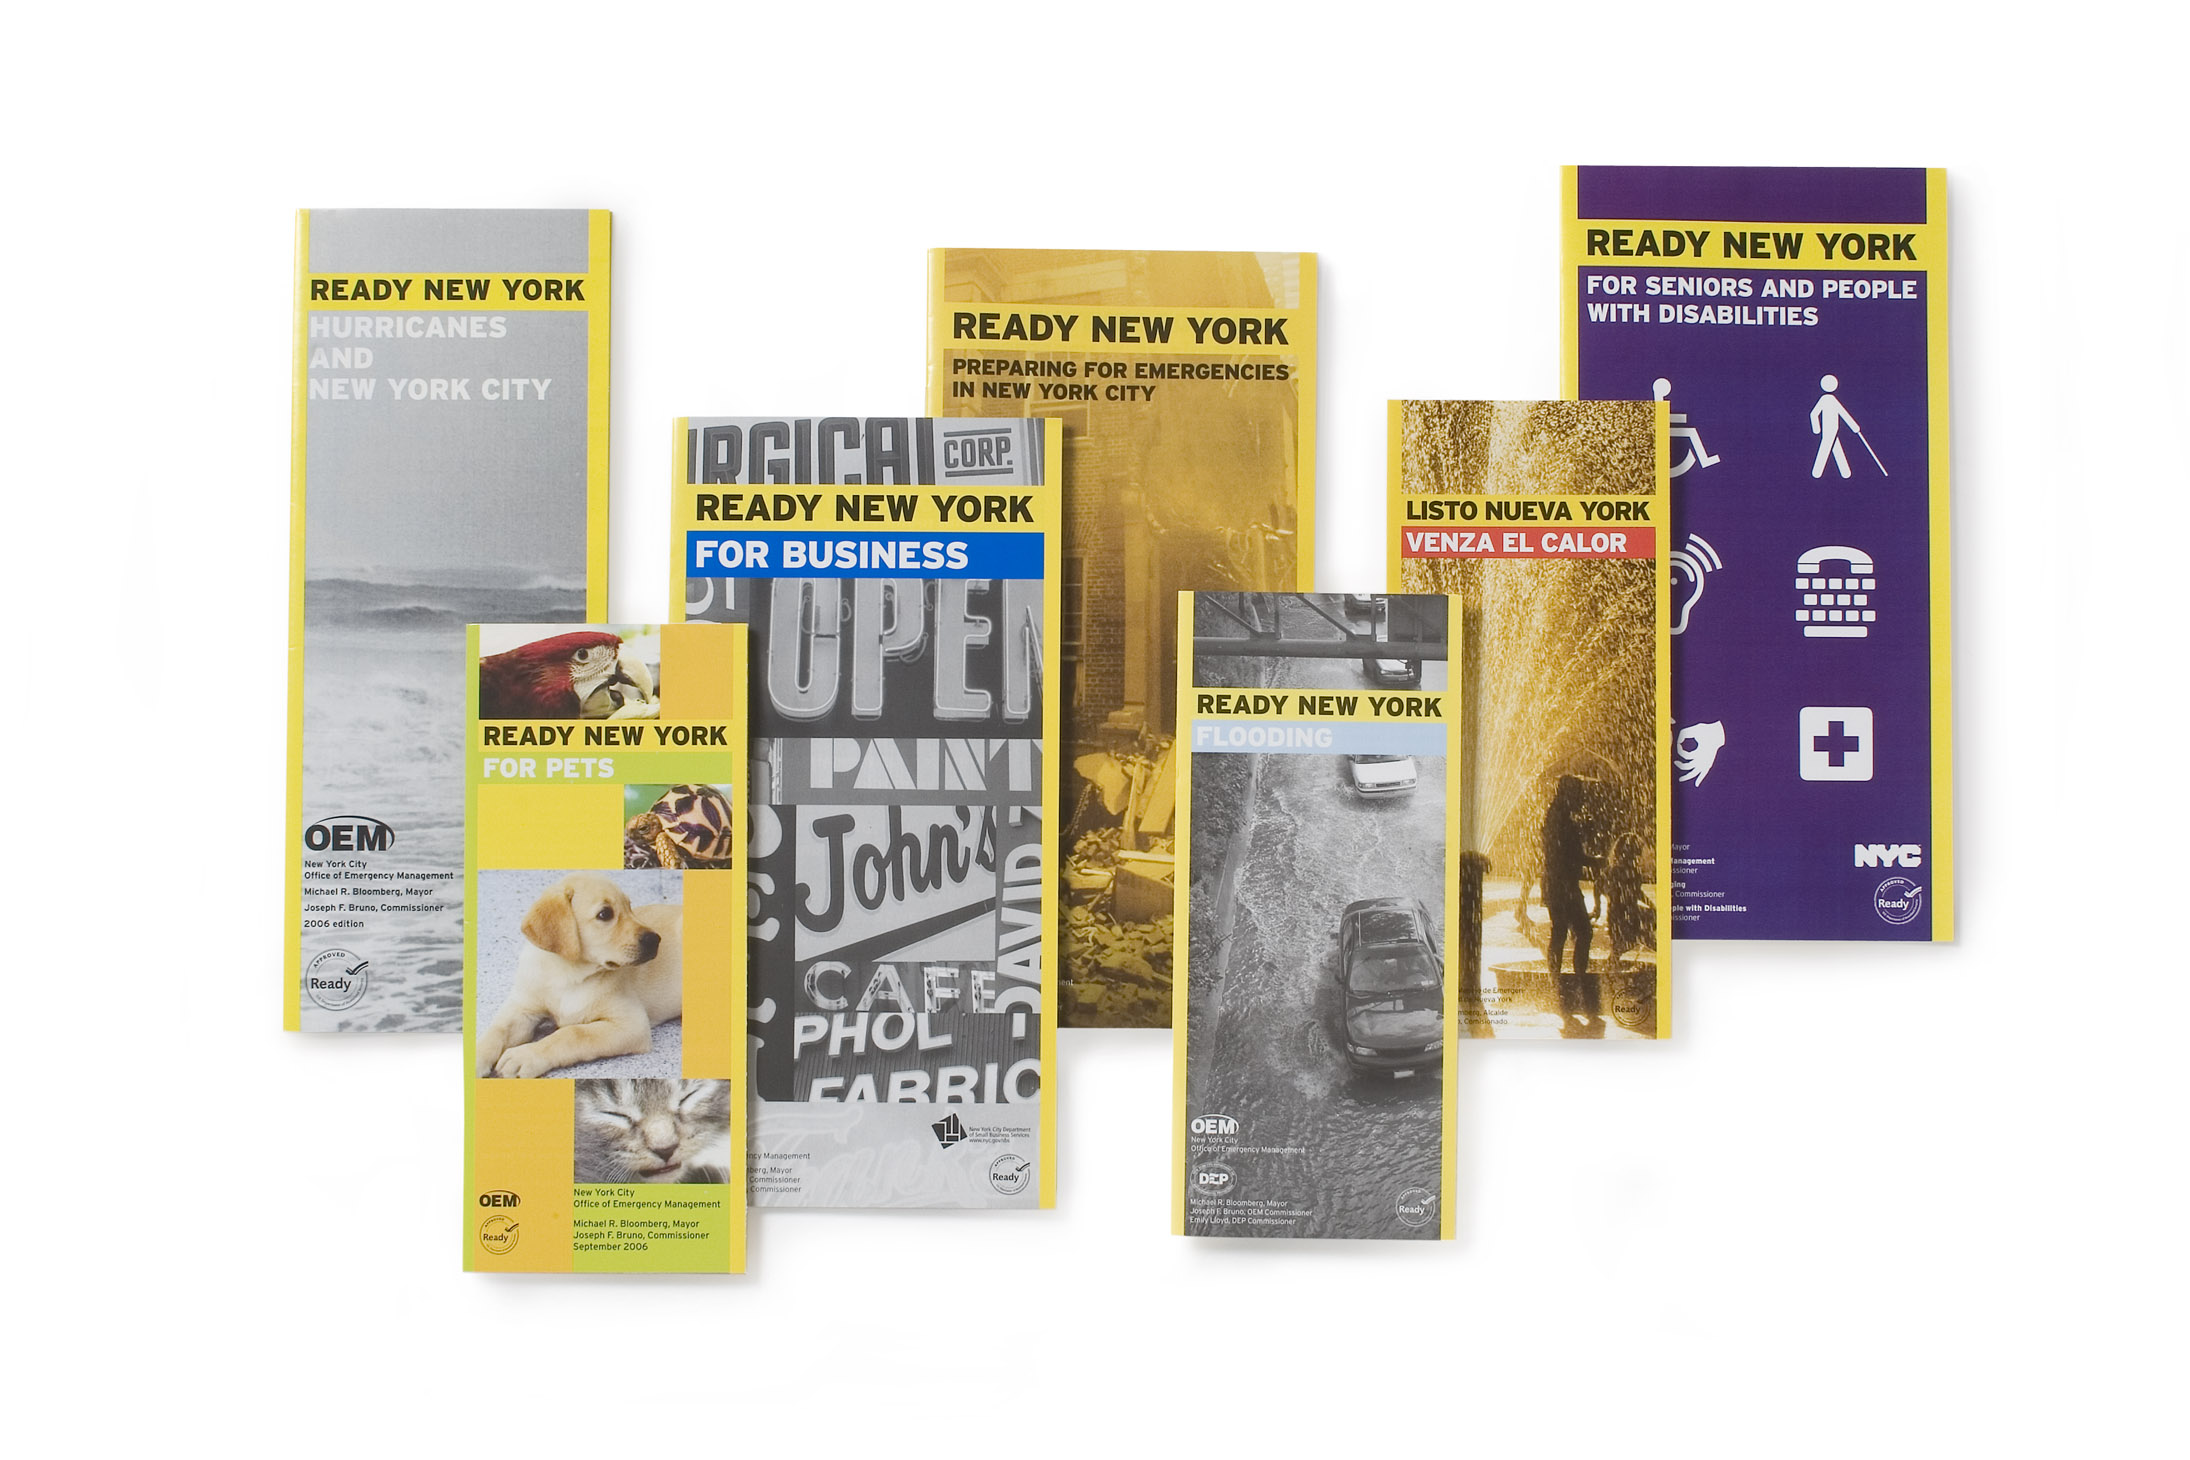 Project image 4 for Brochures, New York City Office of Emergency Management